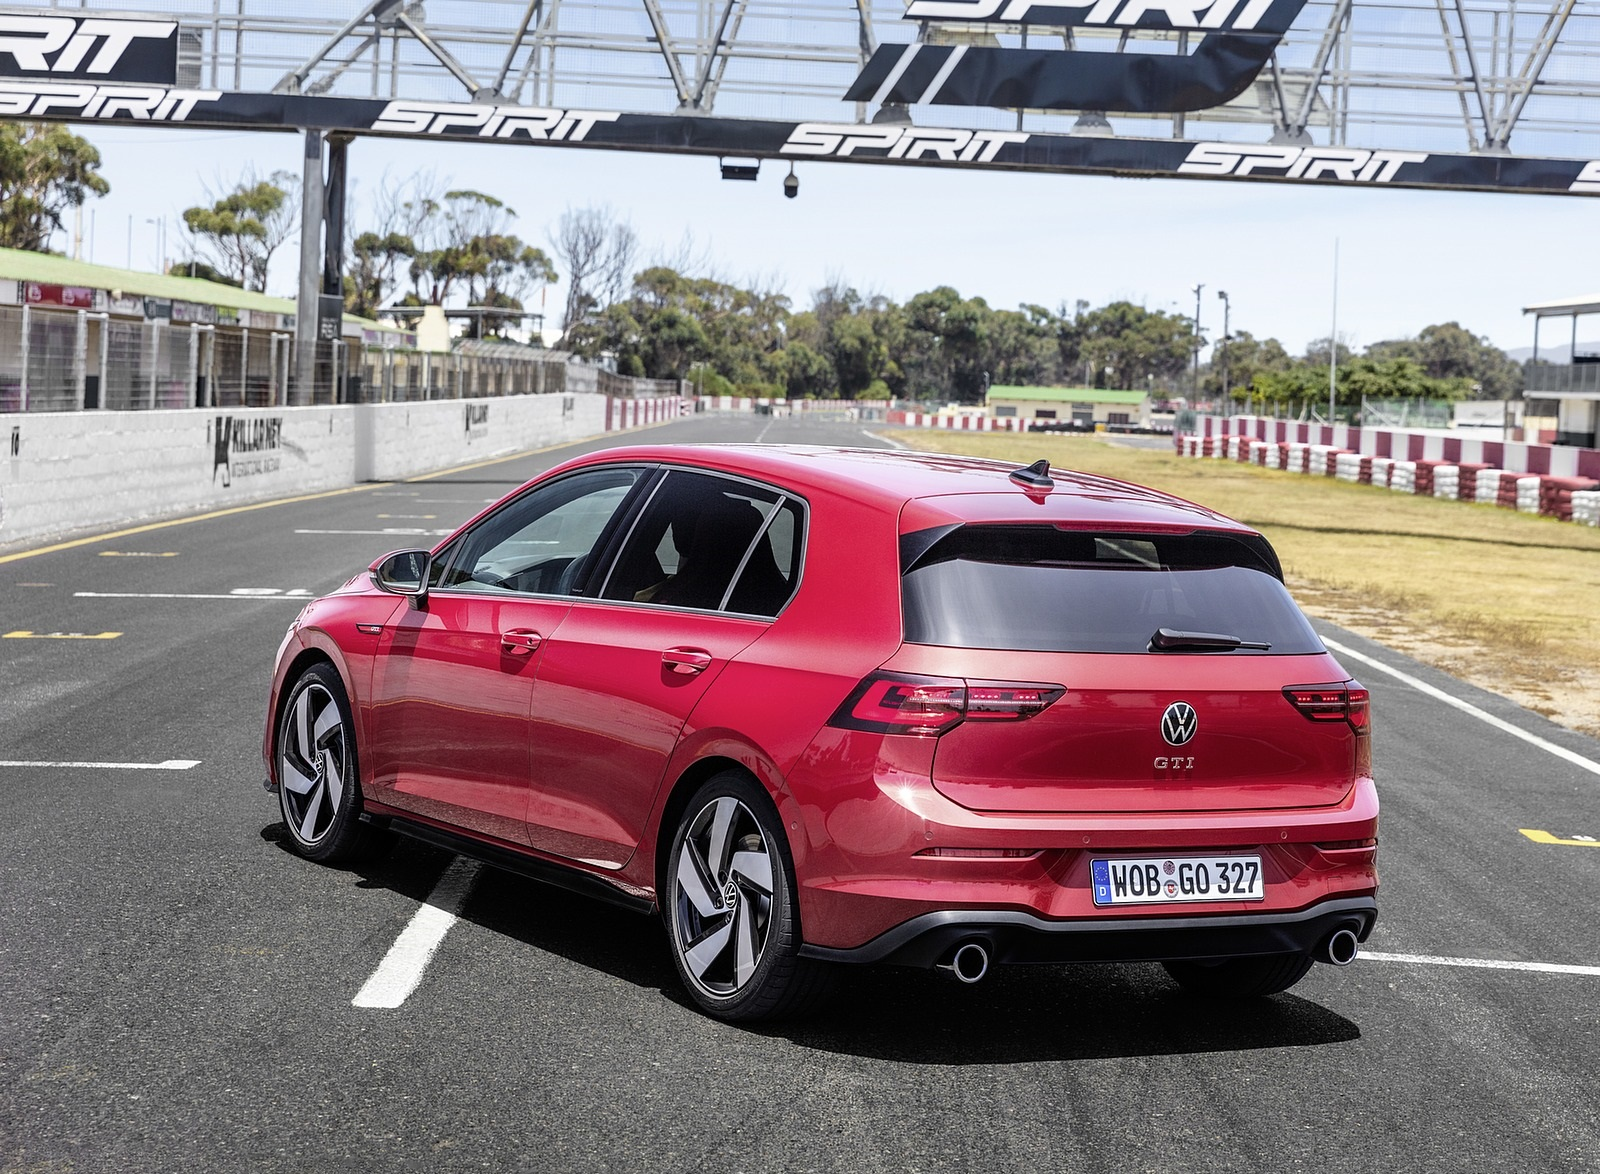 2021 Volkswagen Golf Gti Wallpapers 46 Hd Images Newcarcars